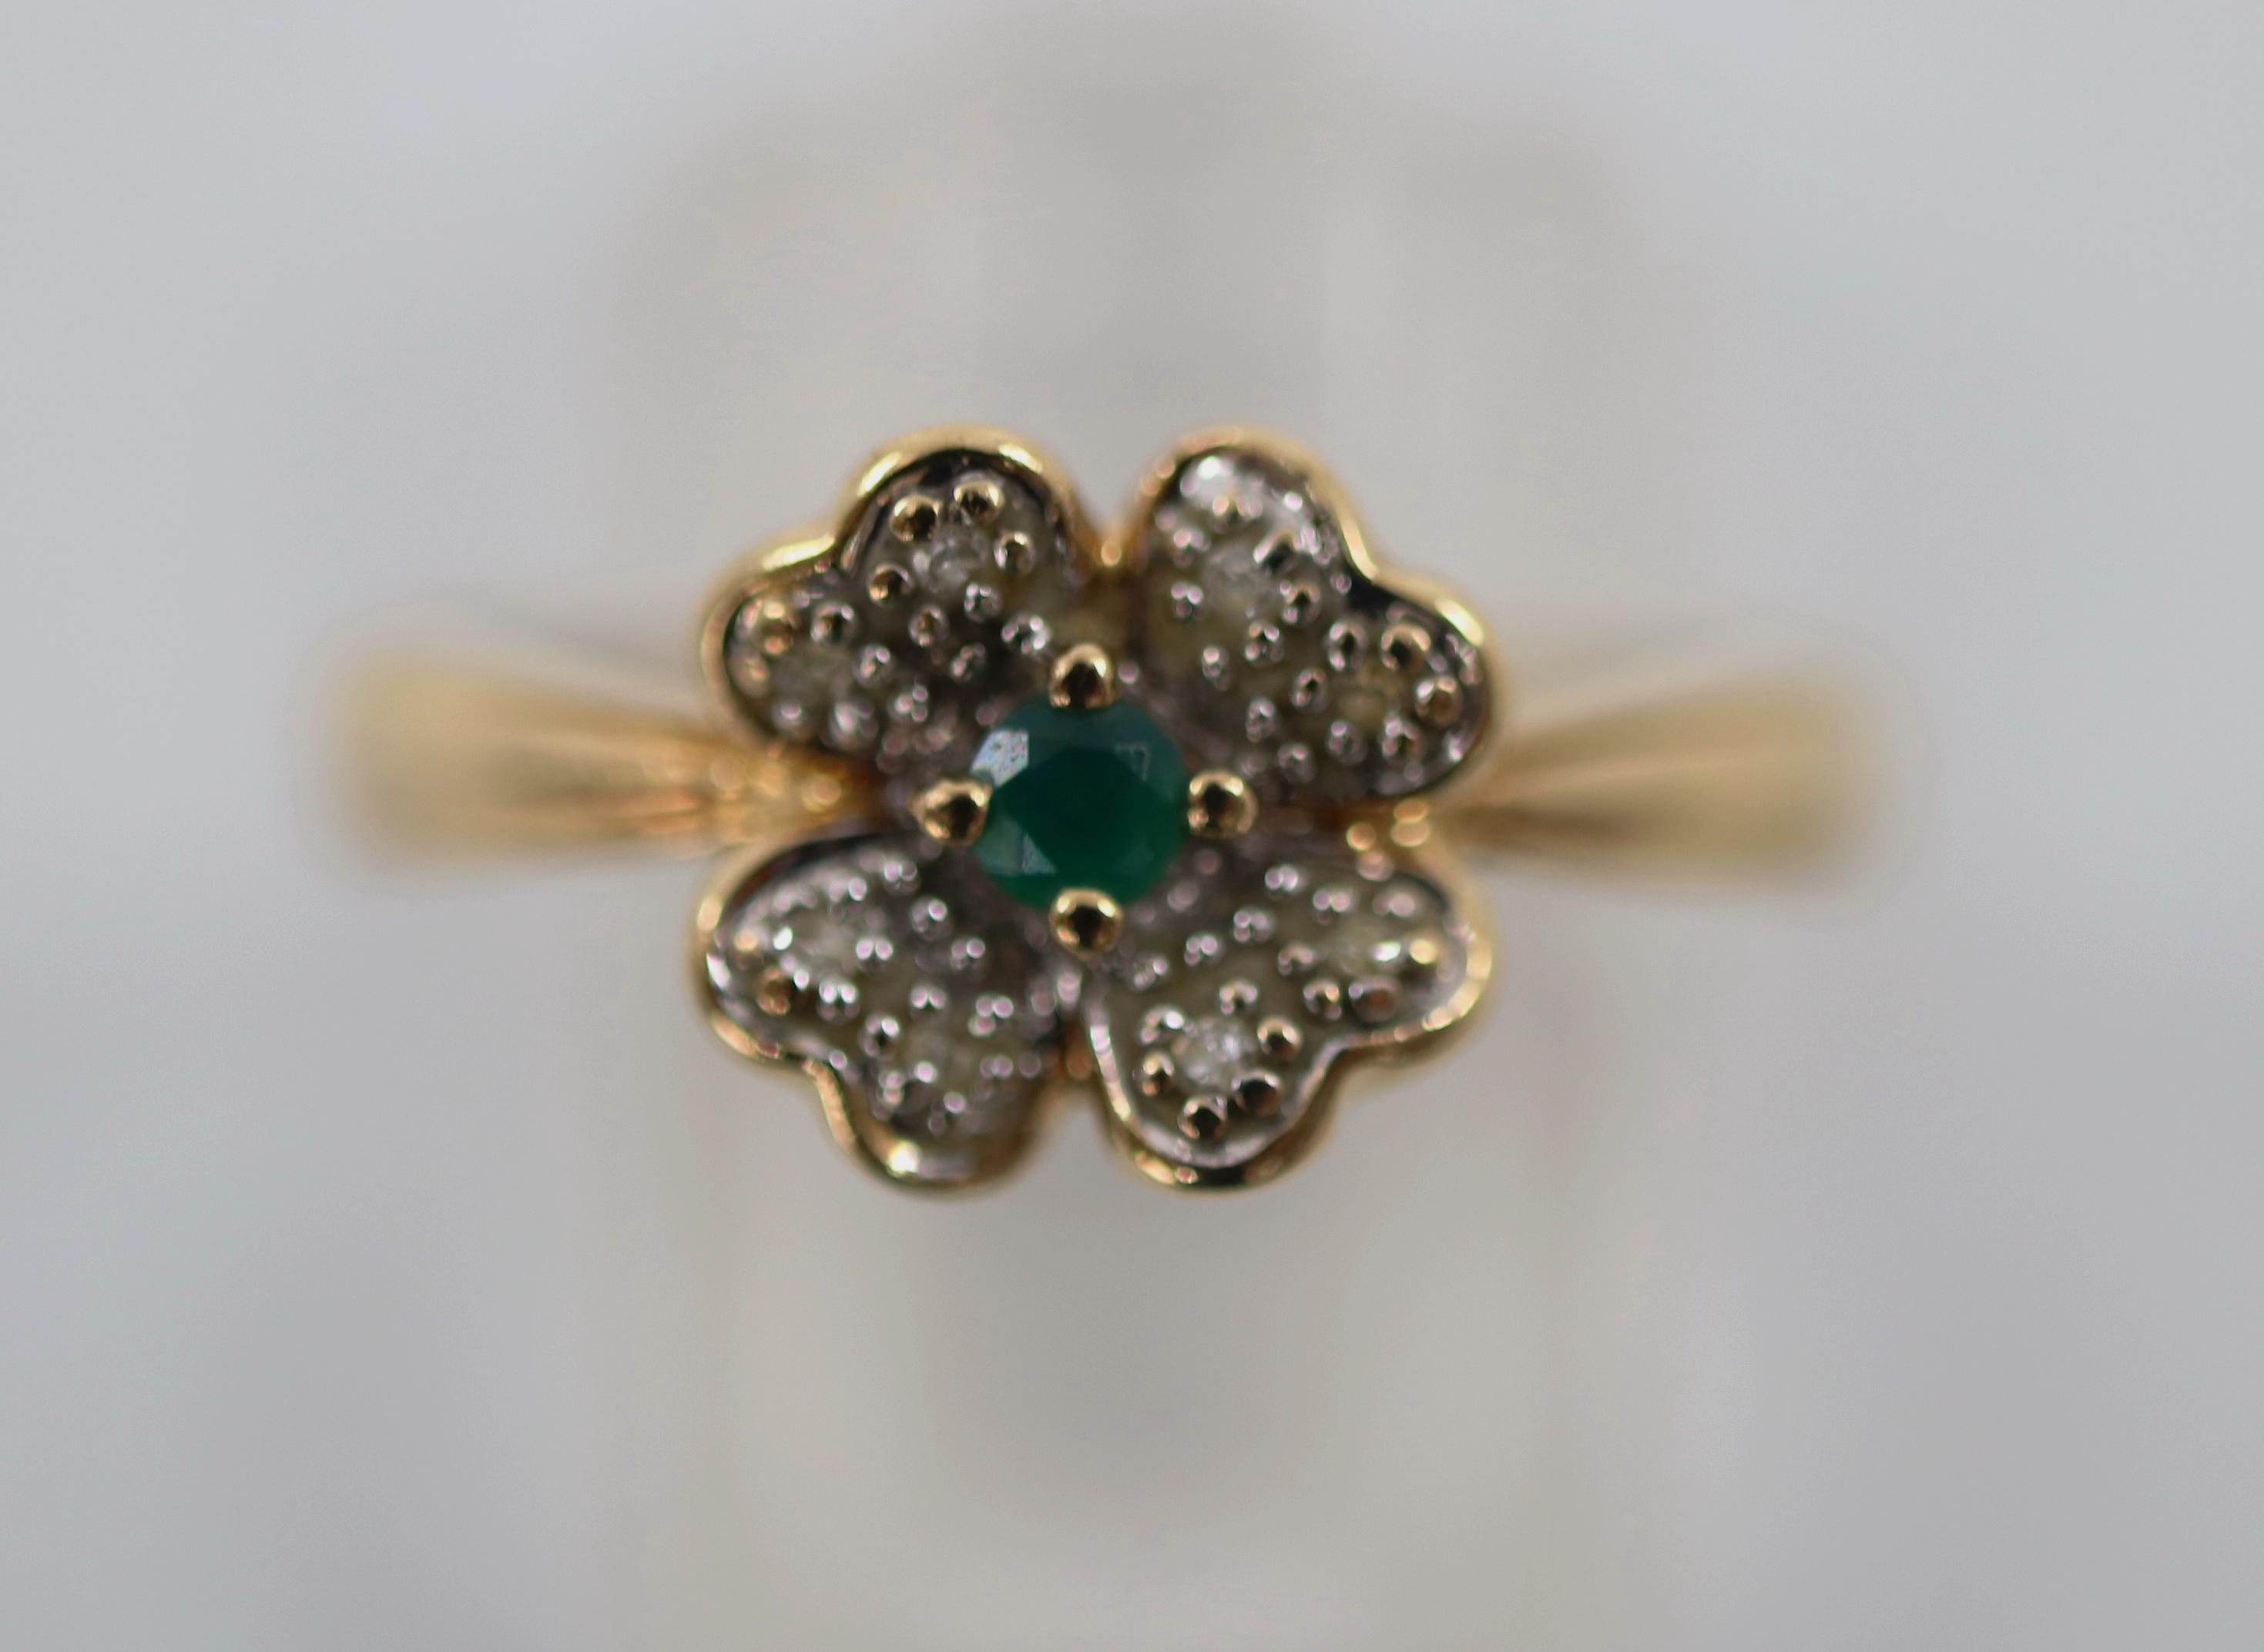 9CT HALLMARKED NATURAL EMERALD & DIAMOND RING, 1.5 GRAMS TOTAL WEIGHT, SIZE N